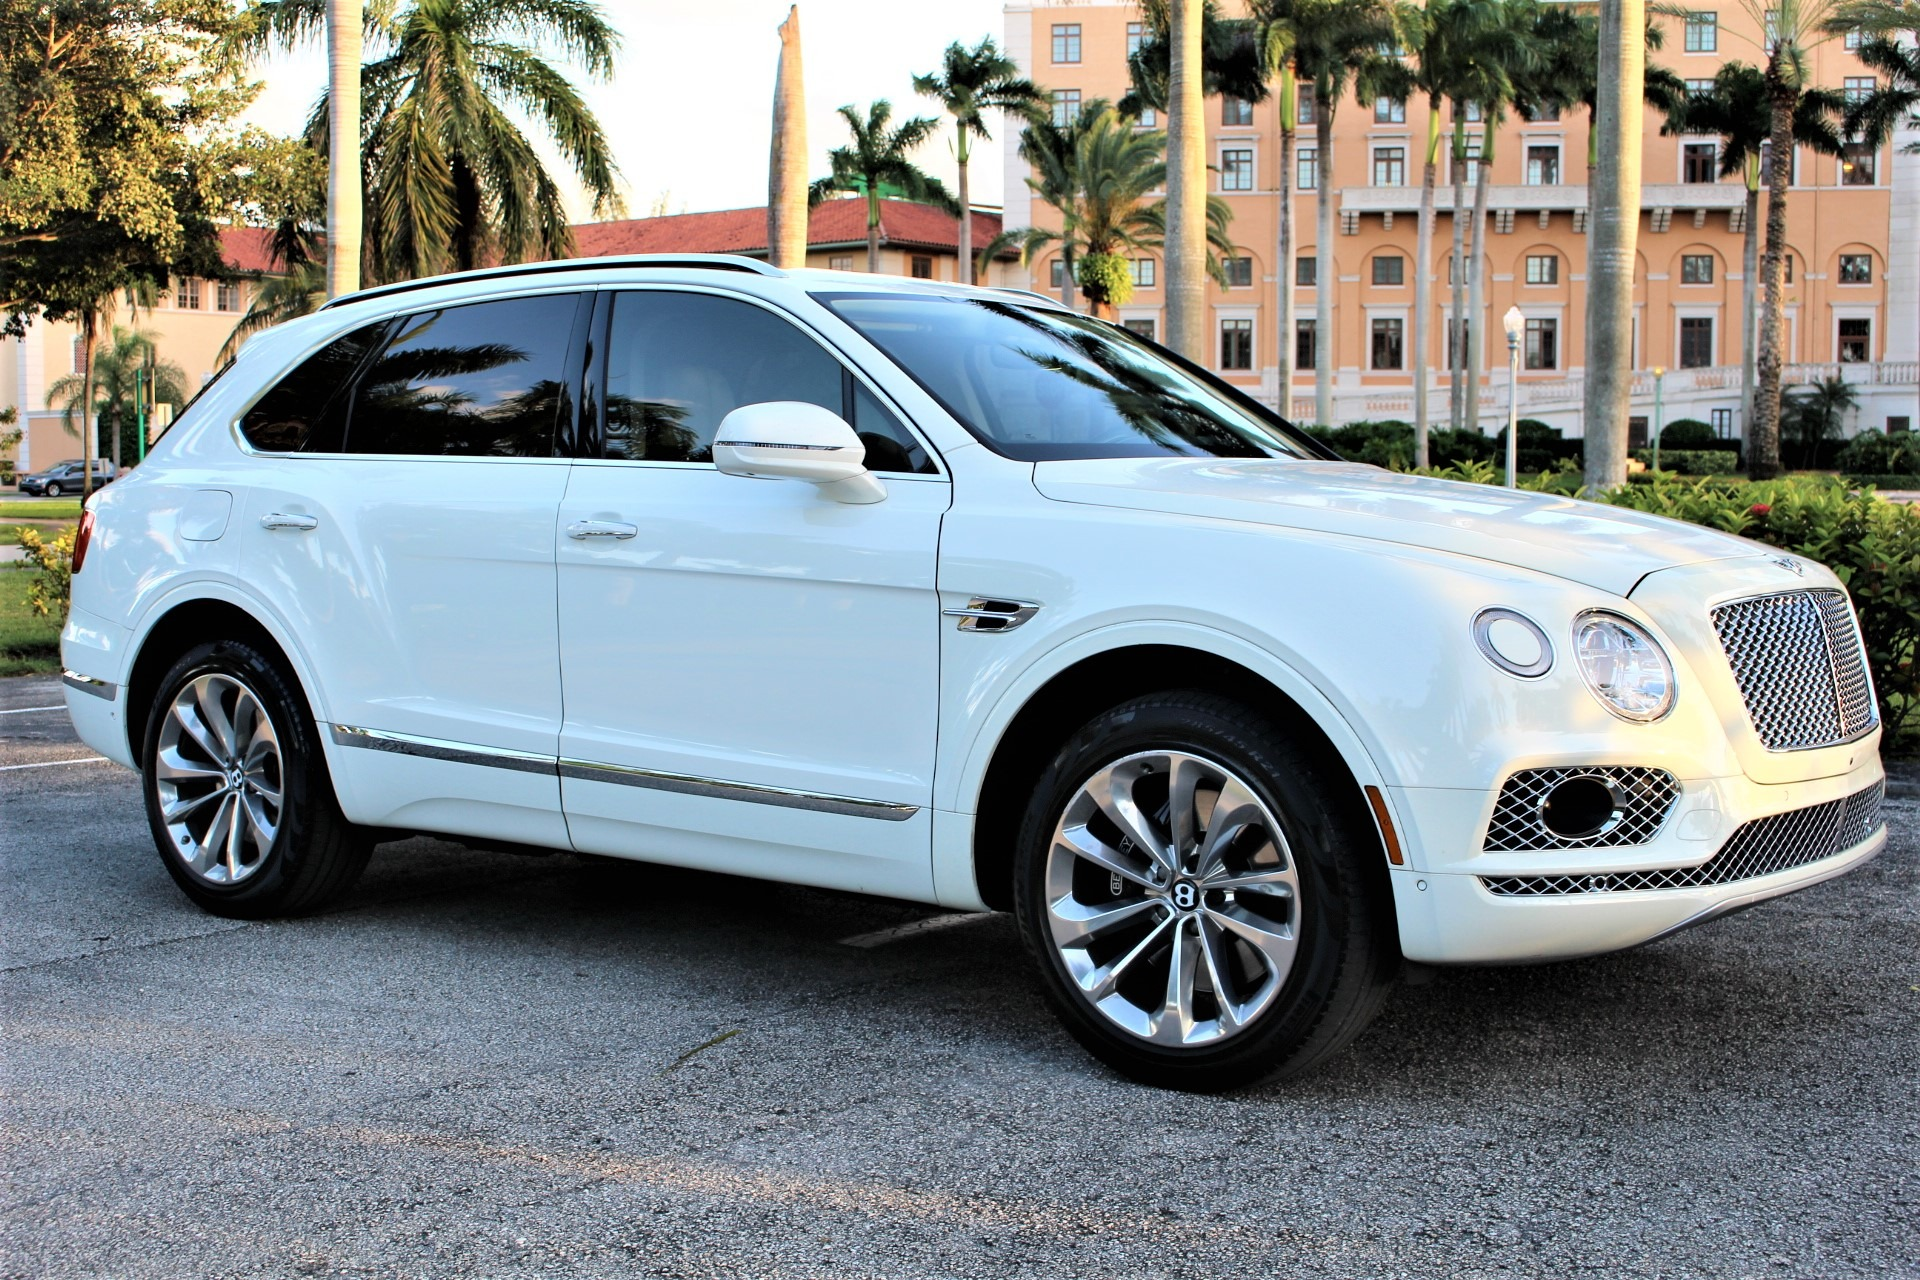 Used 2017 Bentley Bentayga W12 for sale Sold at The Gables Sports Cars in Miami FL 33146 2